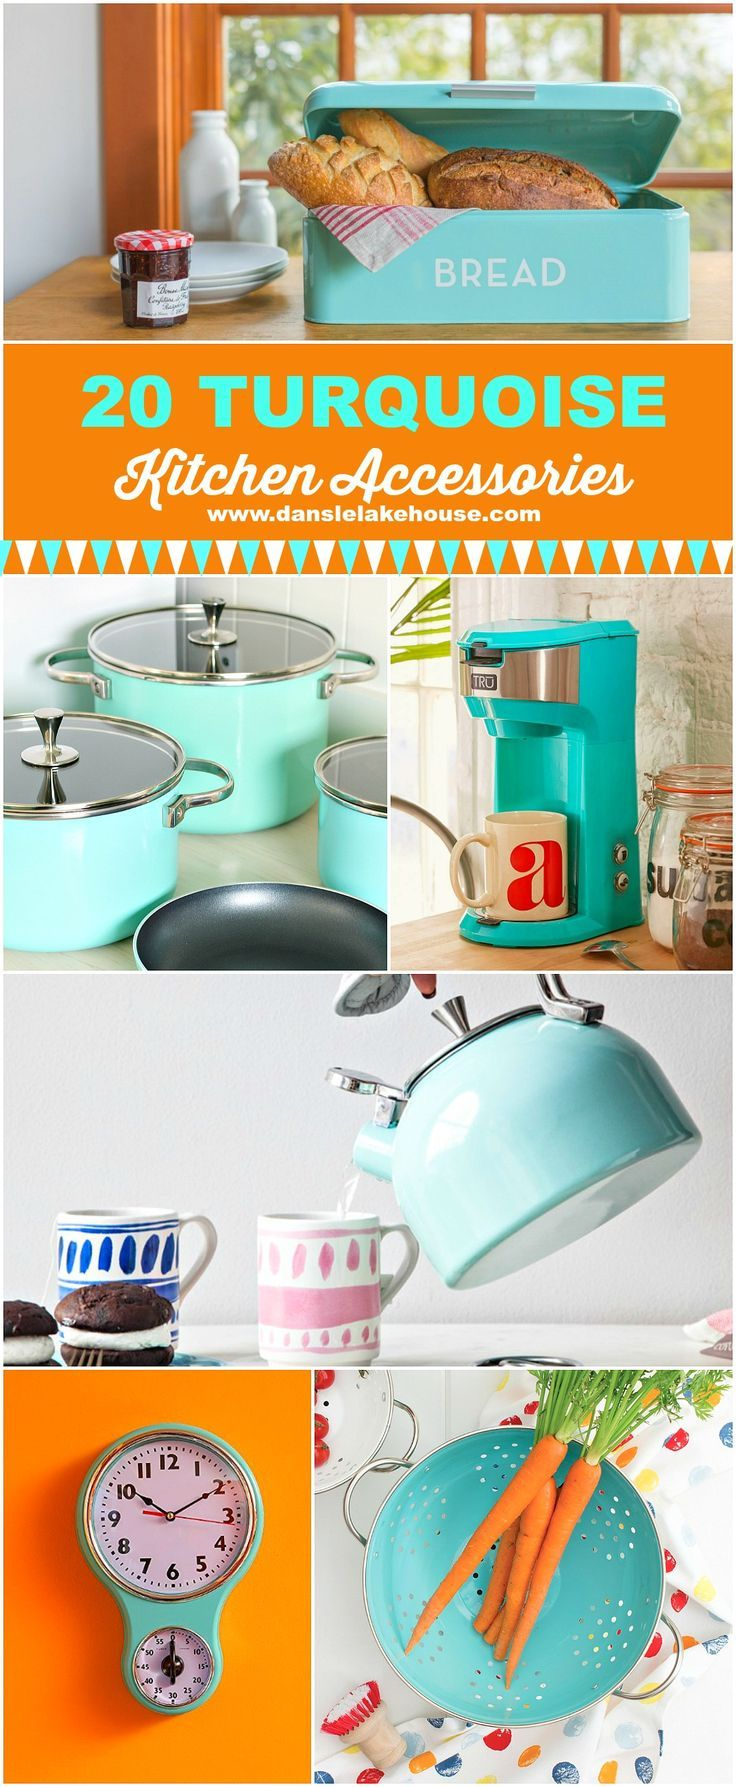 20 Gorgeous Turquoise Kitchen Accessories   From Pots And Pans To Cute  Storage, This All